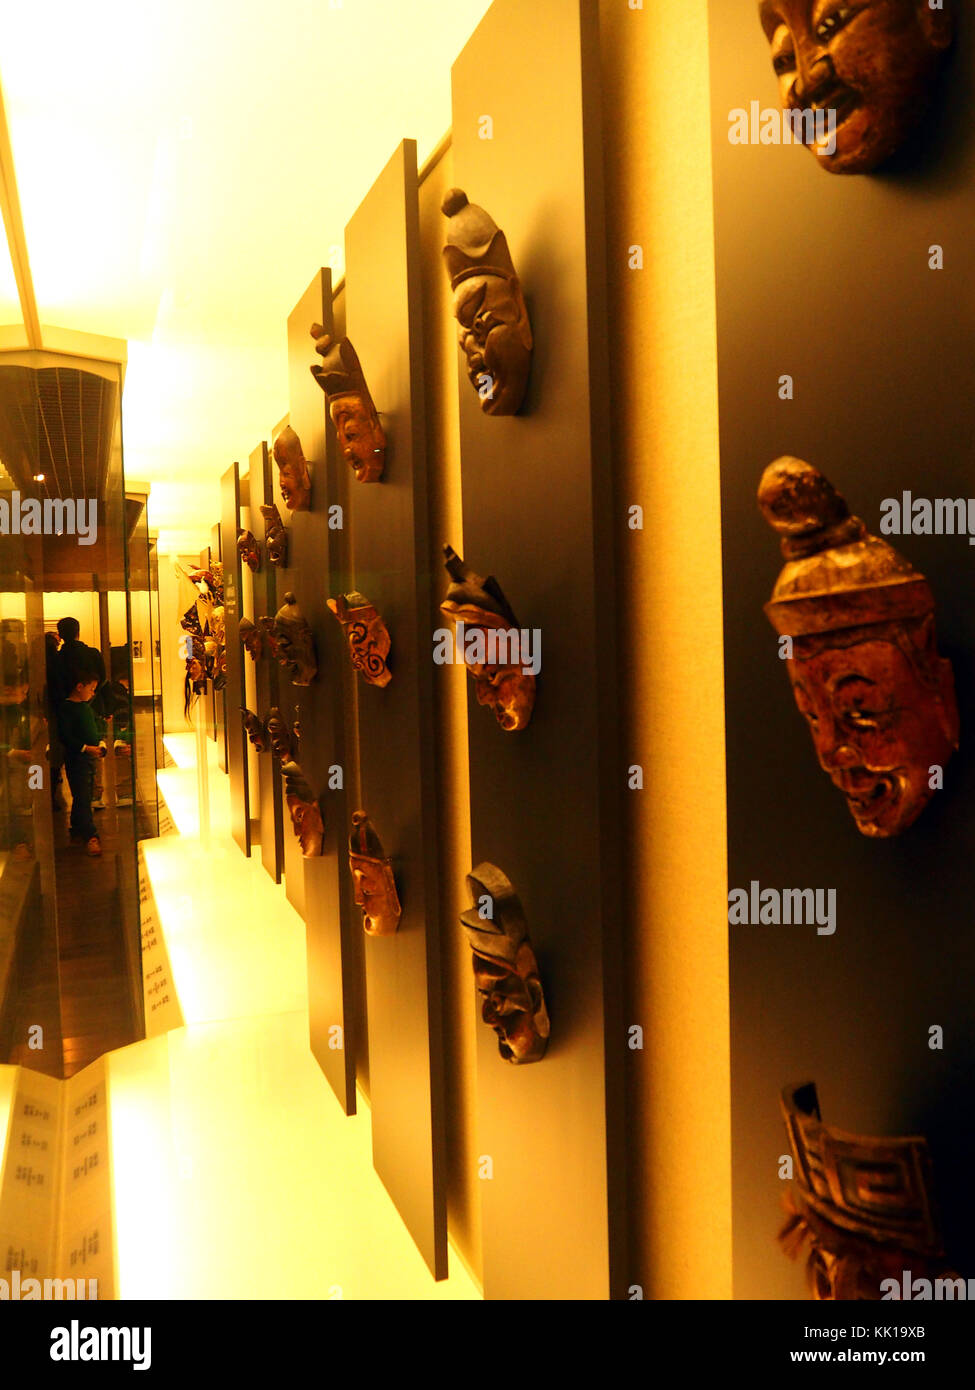 Young boy looking at the gallery of masks in the Shanghai Museum, China - Stock Image